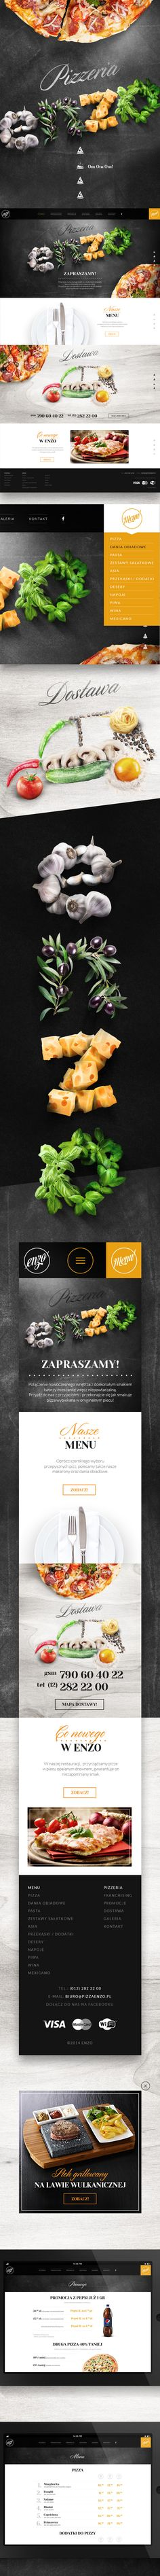 Pizzeria ENZO on Behance